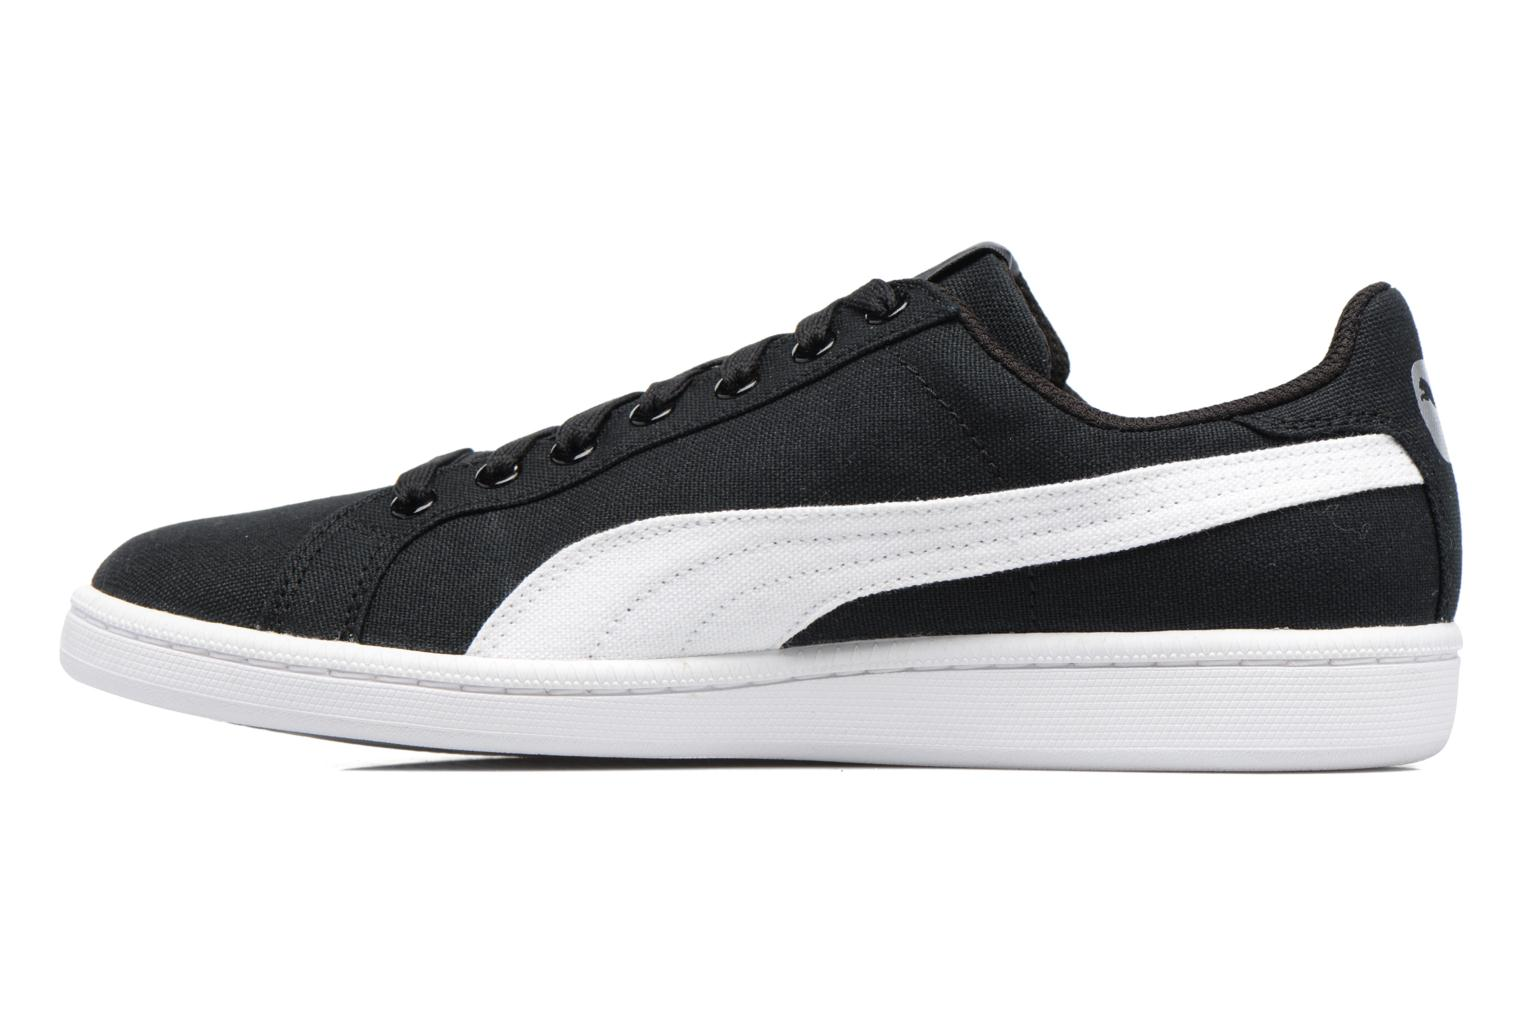 Puma Smash Cv Black/white